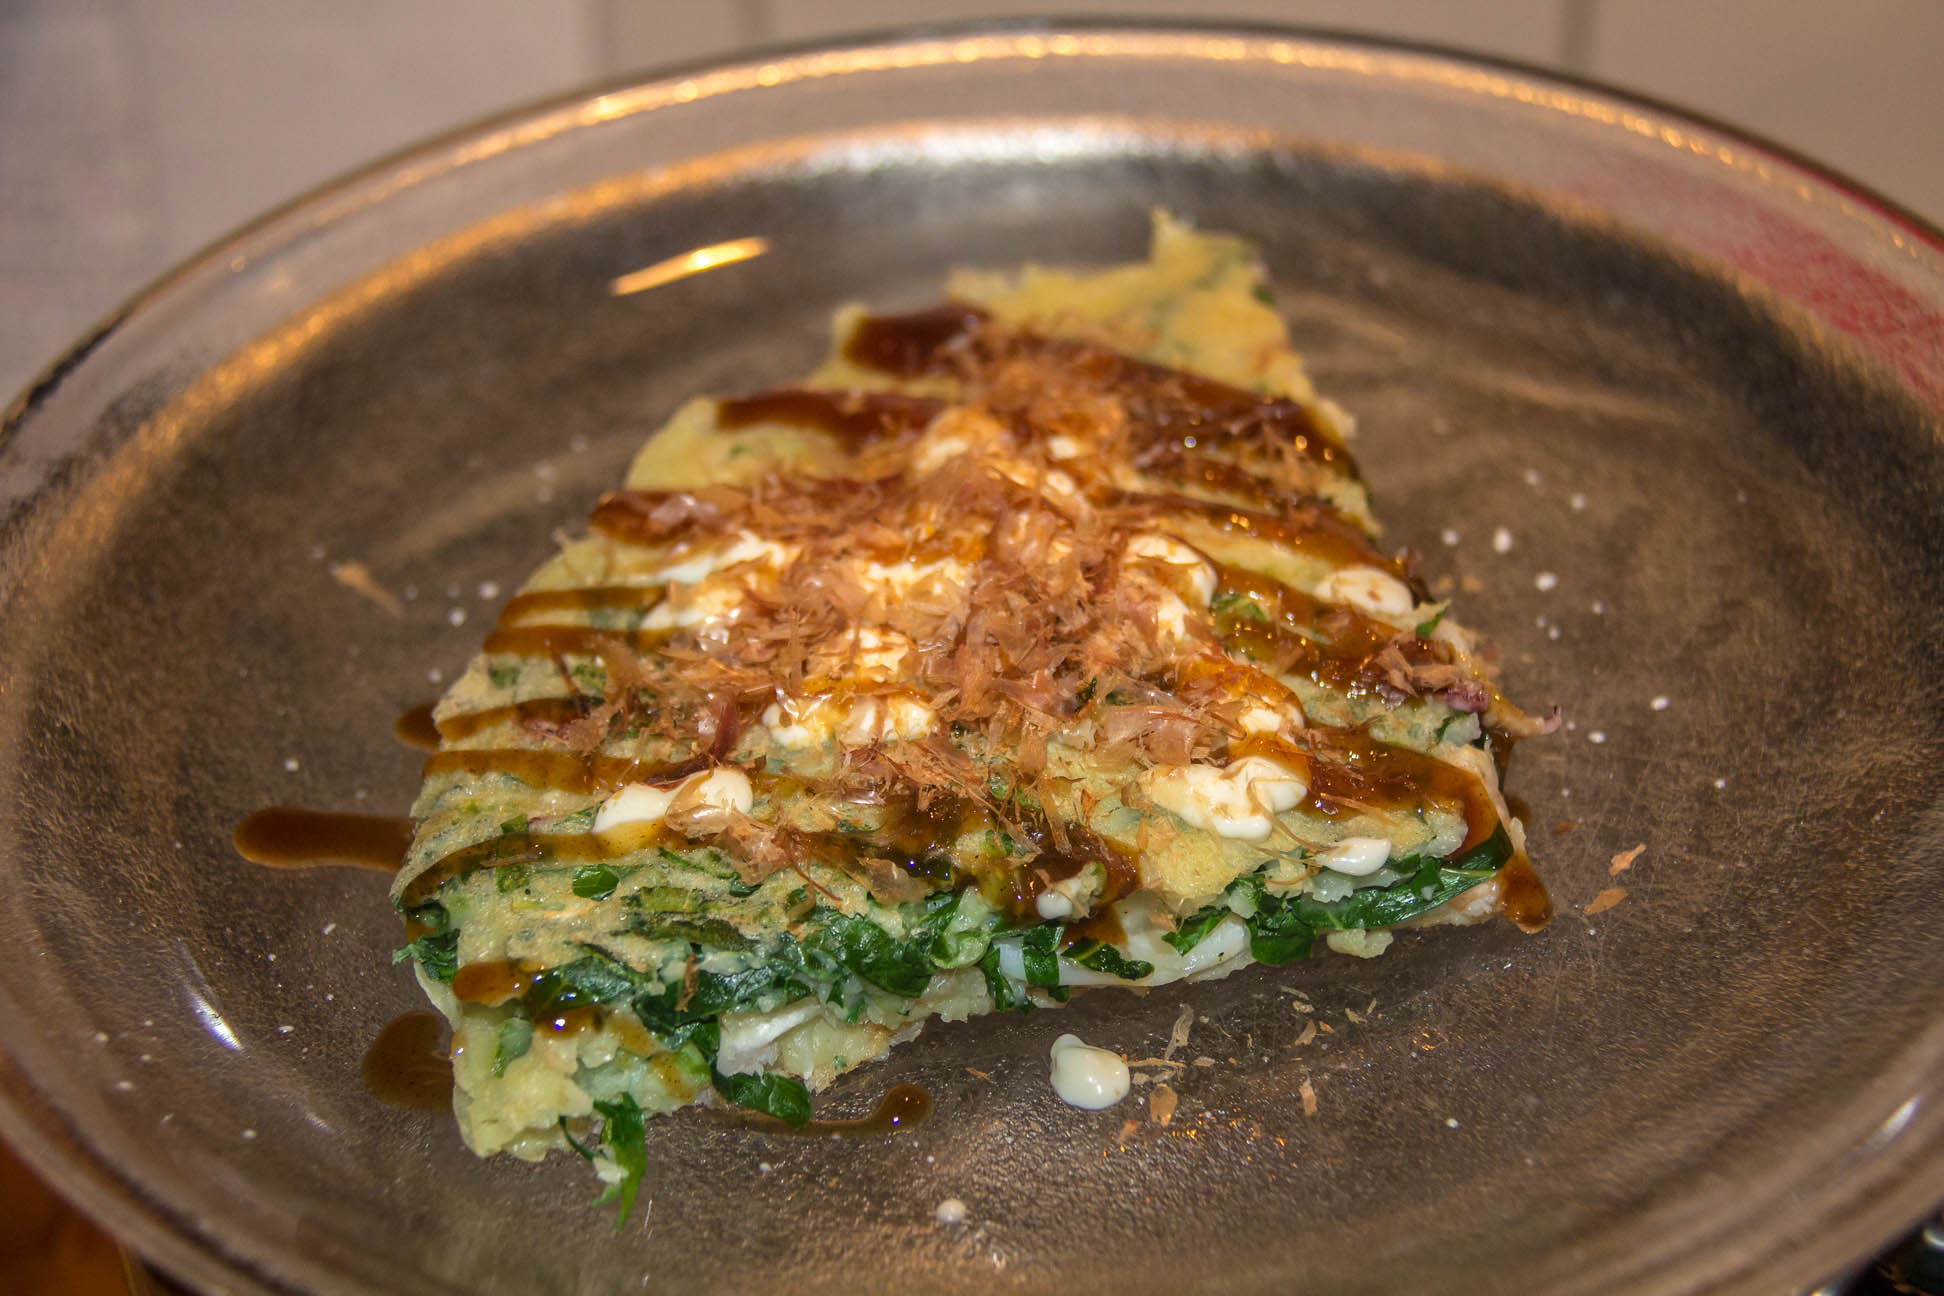 05/07/15 A slice of the finished dish with Japanese mayo and Okonomiyaki sauce and fish flakes